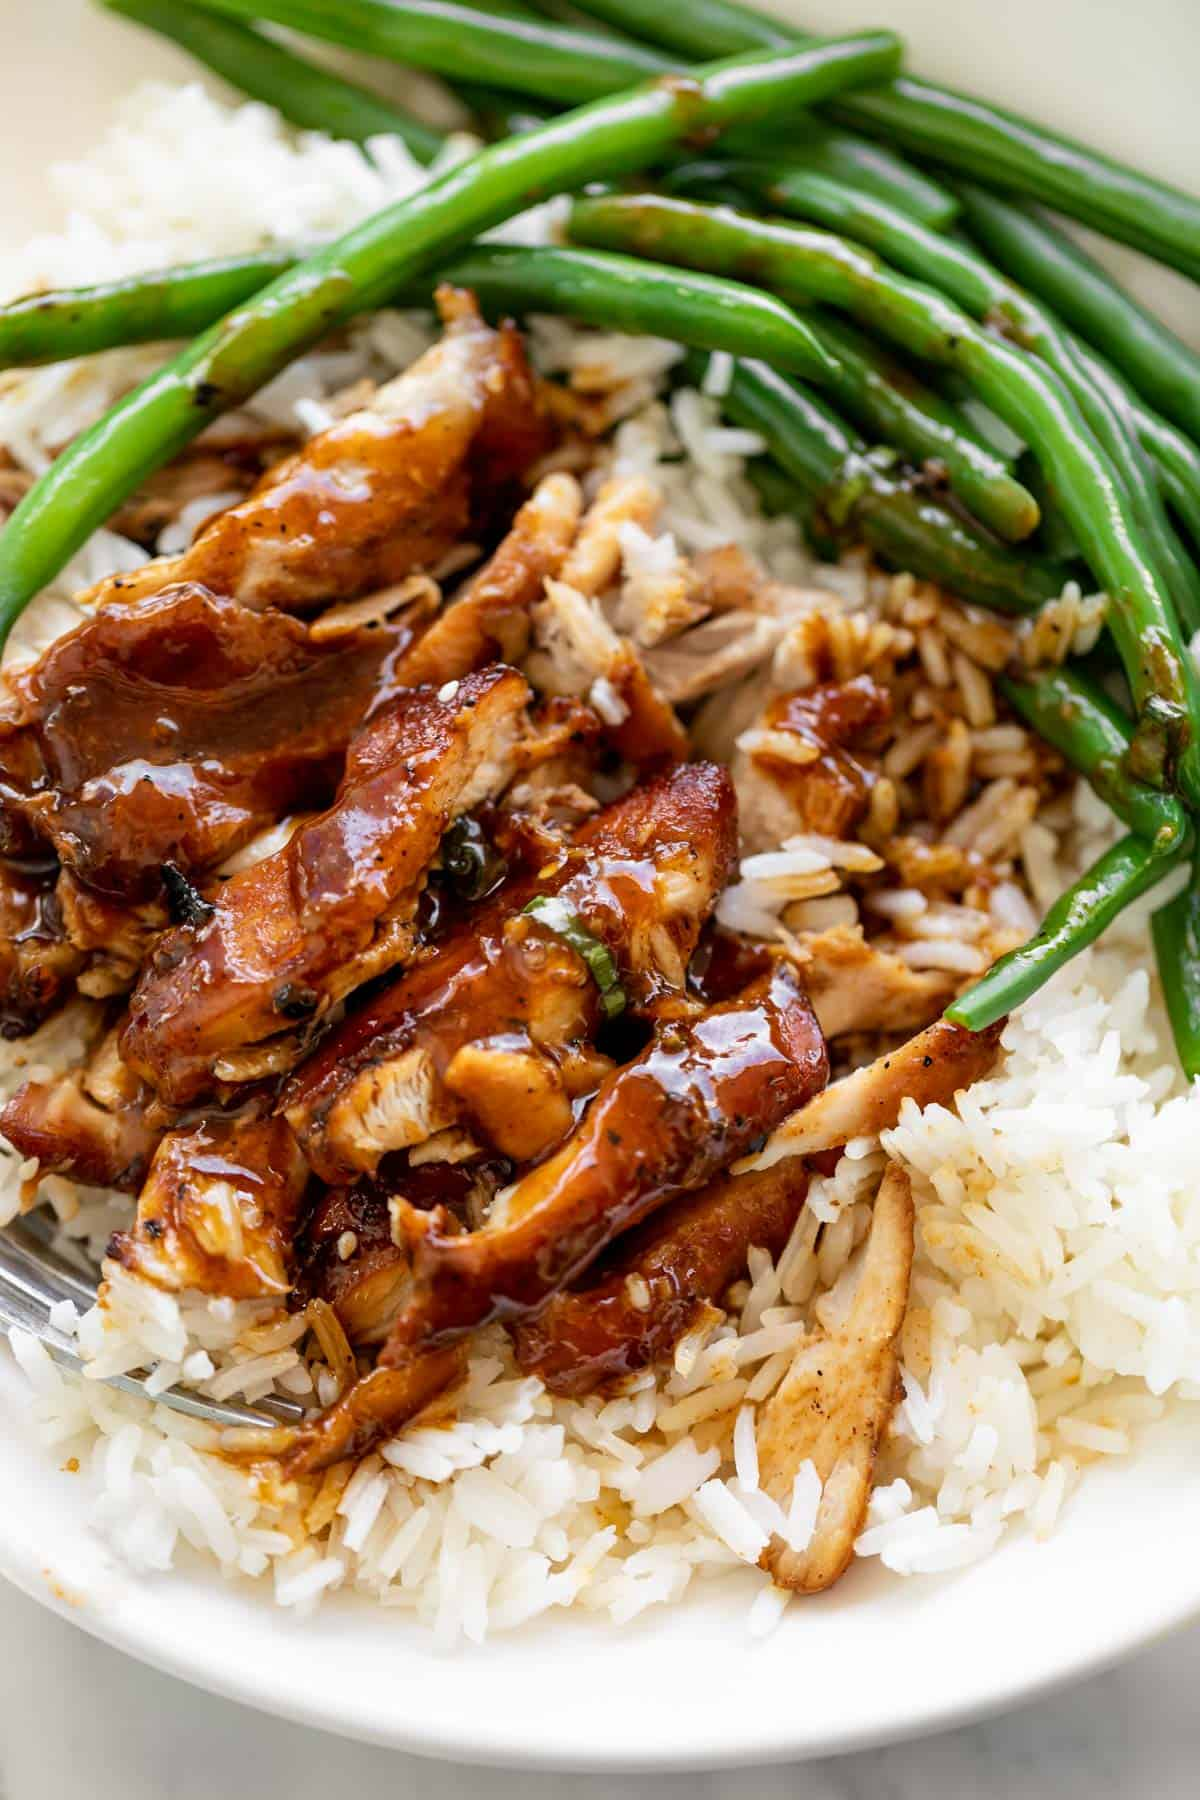 Serving suggestion: Slow cooked honey garlic chicken sits on top of plain white rice in a white bowl with sautéed green beans.